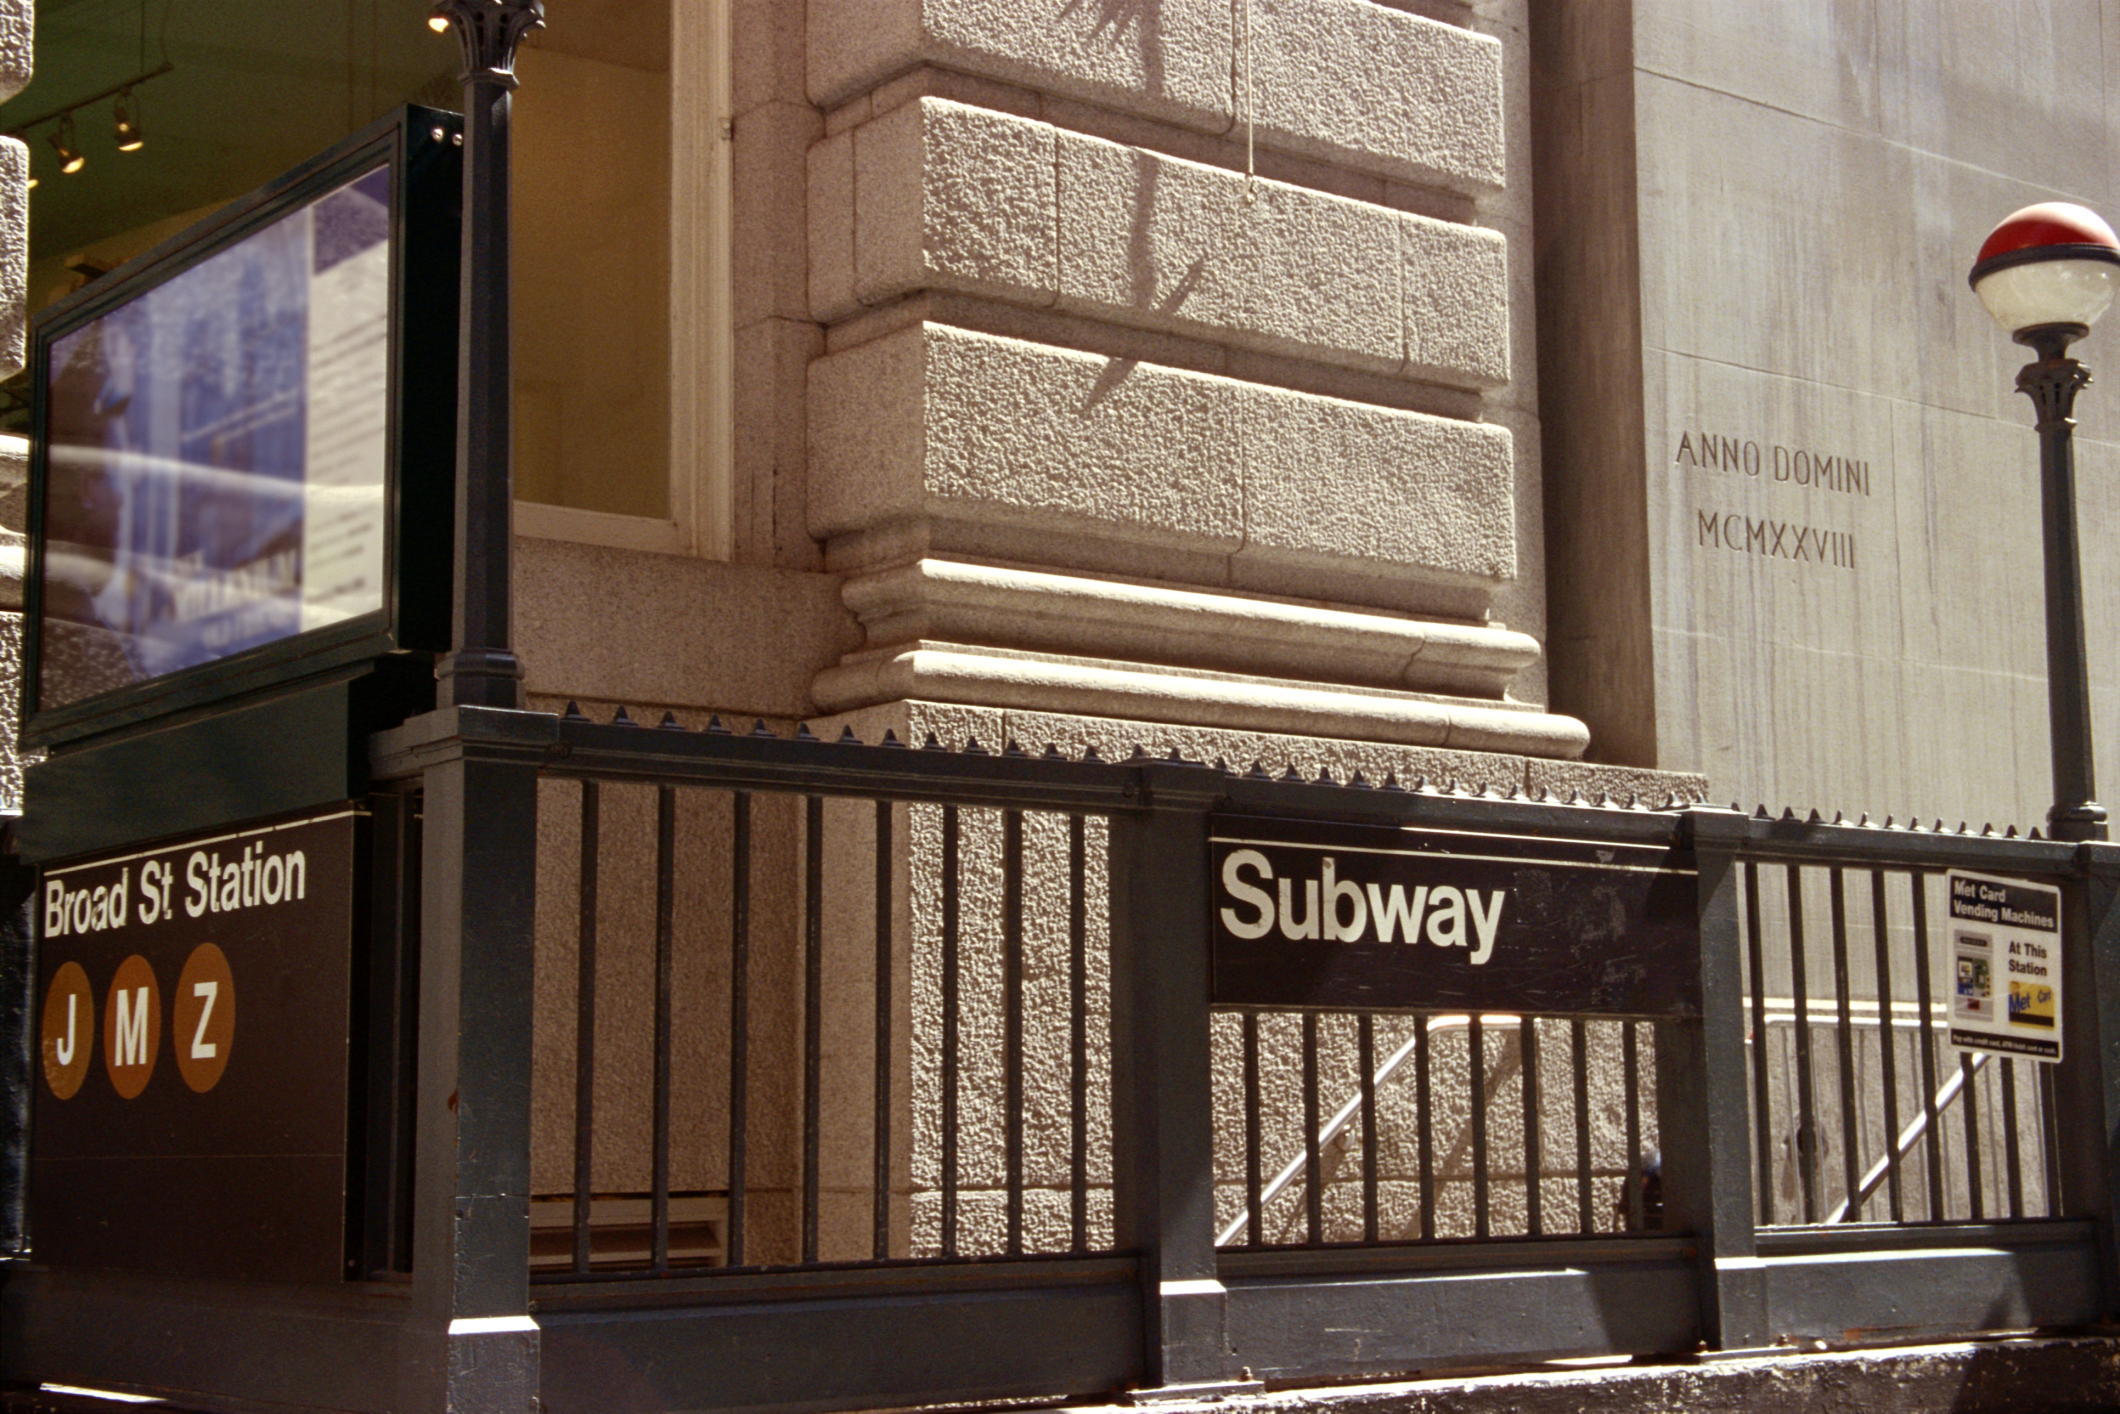 Subway Map From 88 St To 59th Street.How To Get To The Statue Of Liberty On The Subway Getaway Usa